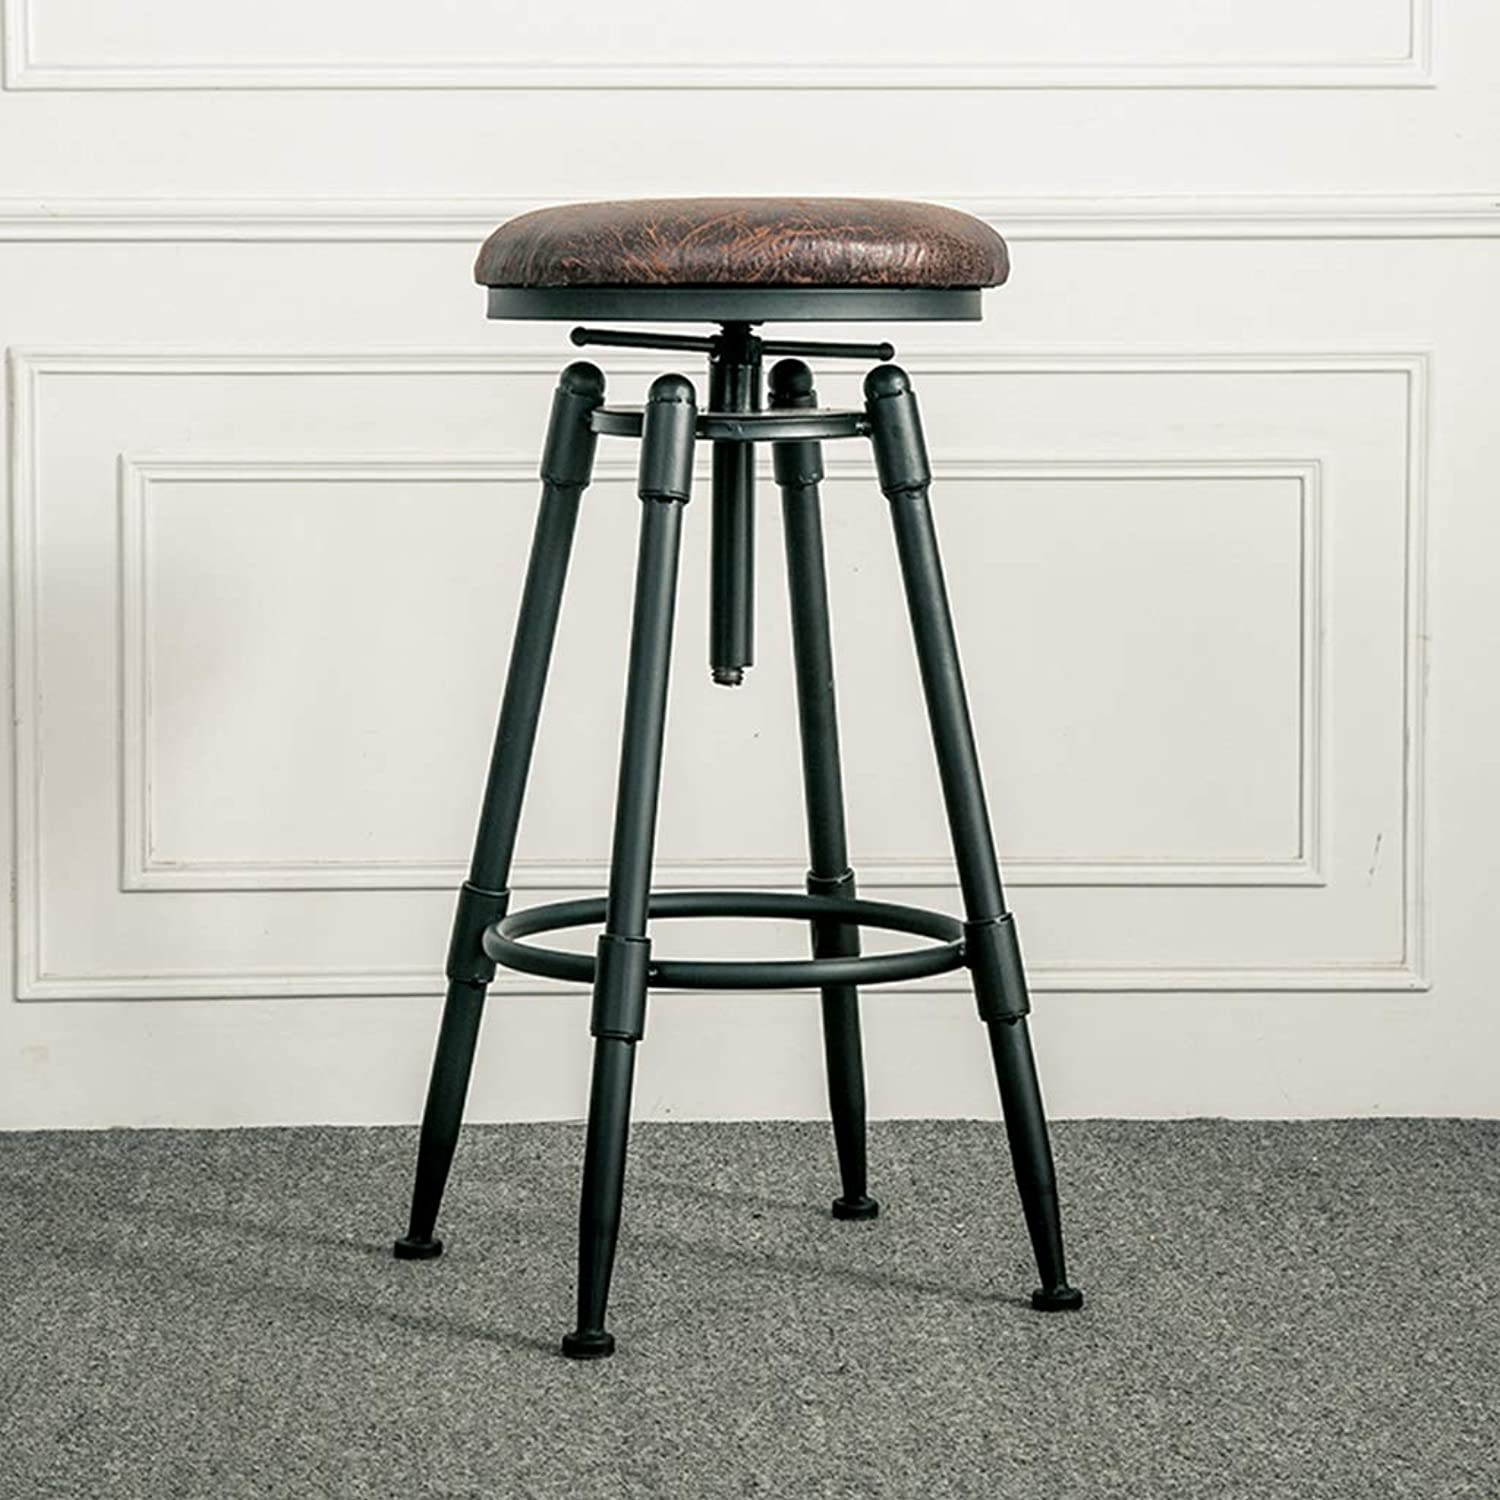 American Iron Art Bar Stool Retro Industrial Design redating Lift High Foot Chair Dining Seat Cafe Counter Household 0527A (color   B)